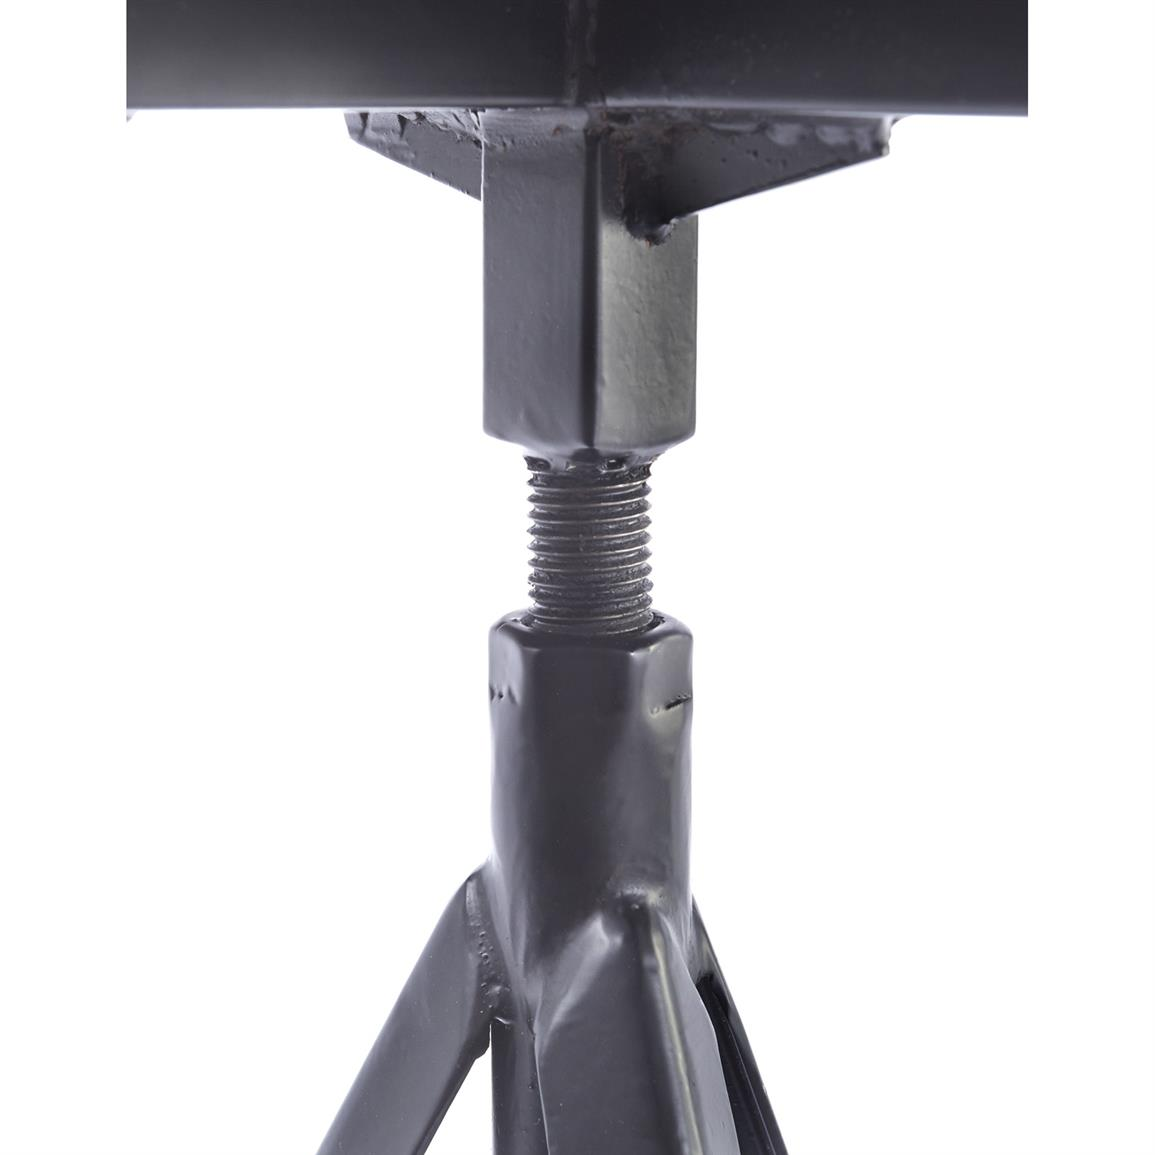 Tripod base provides wide stability on any terrain